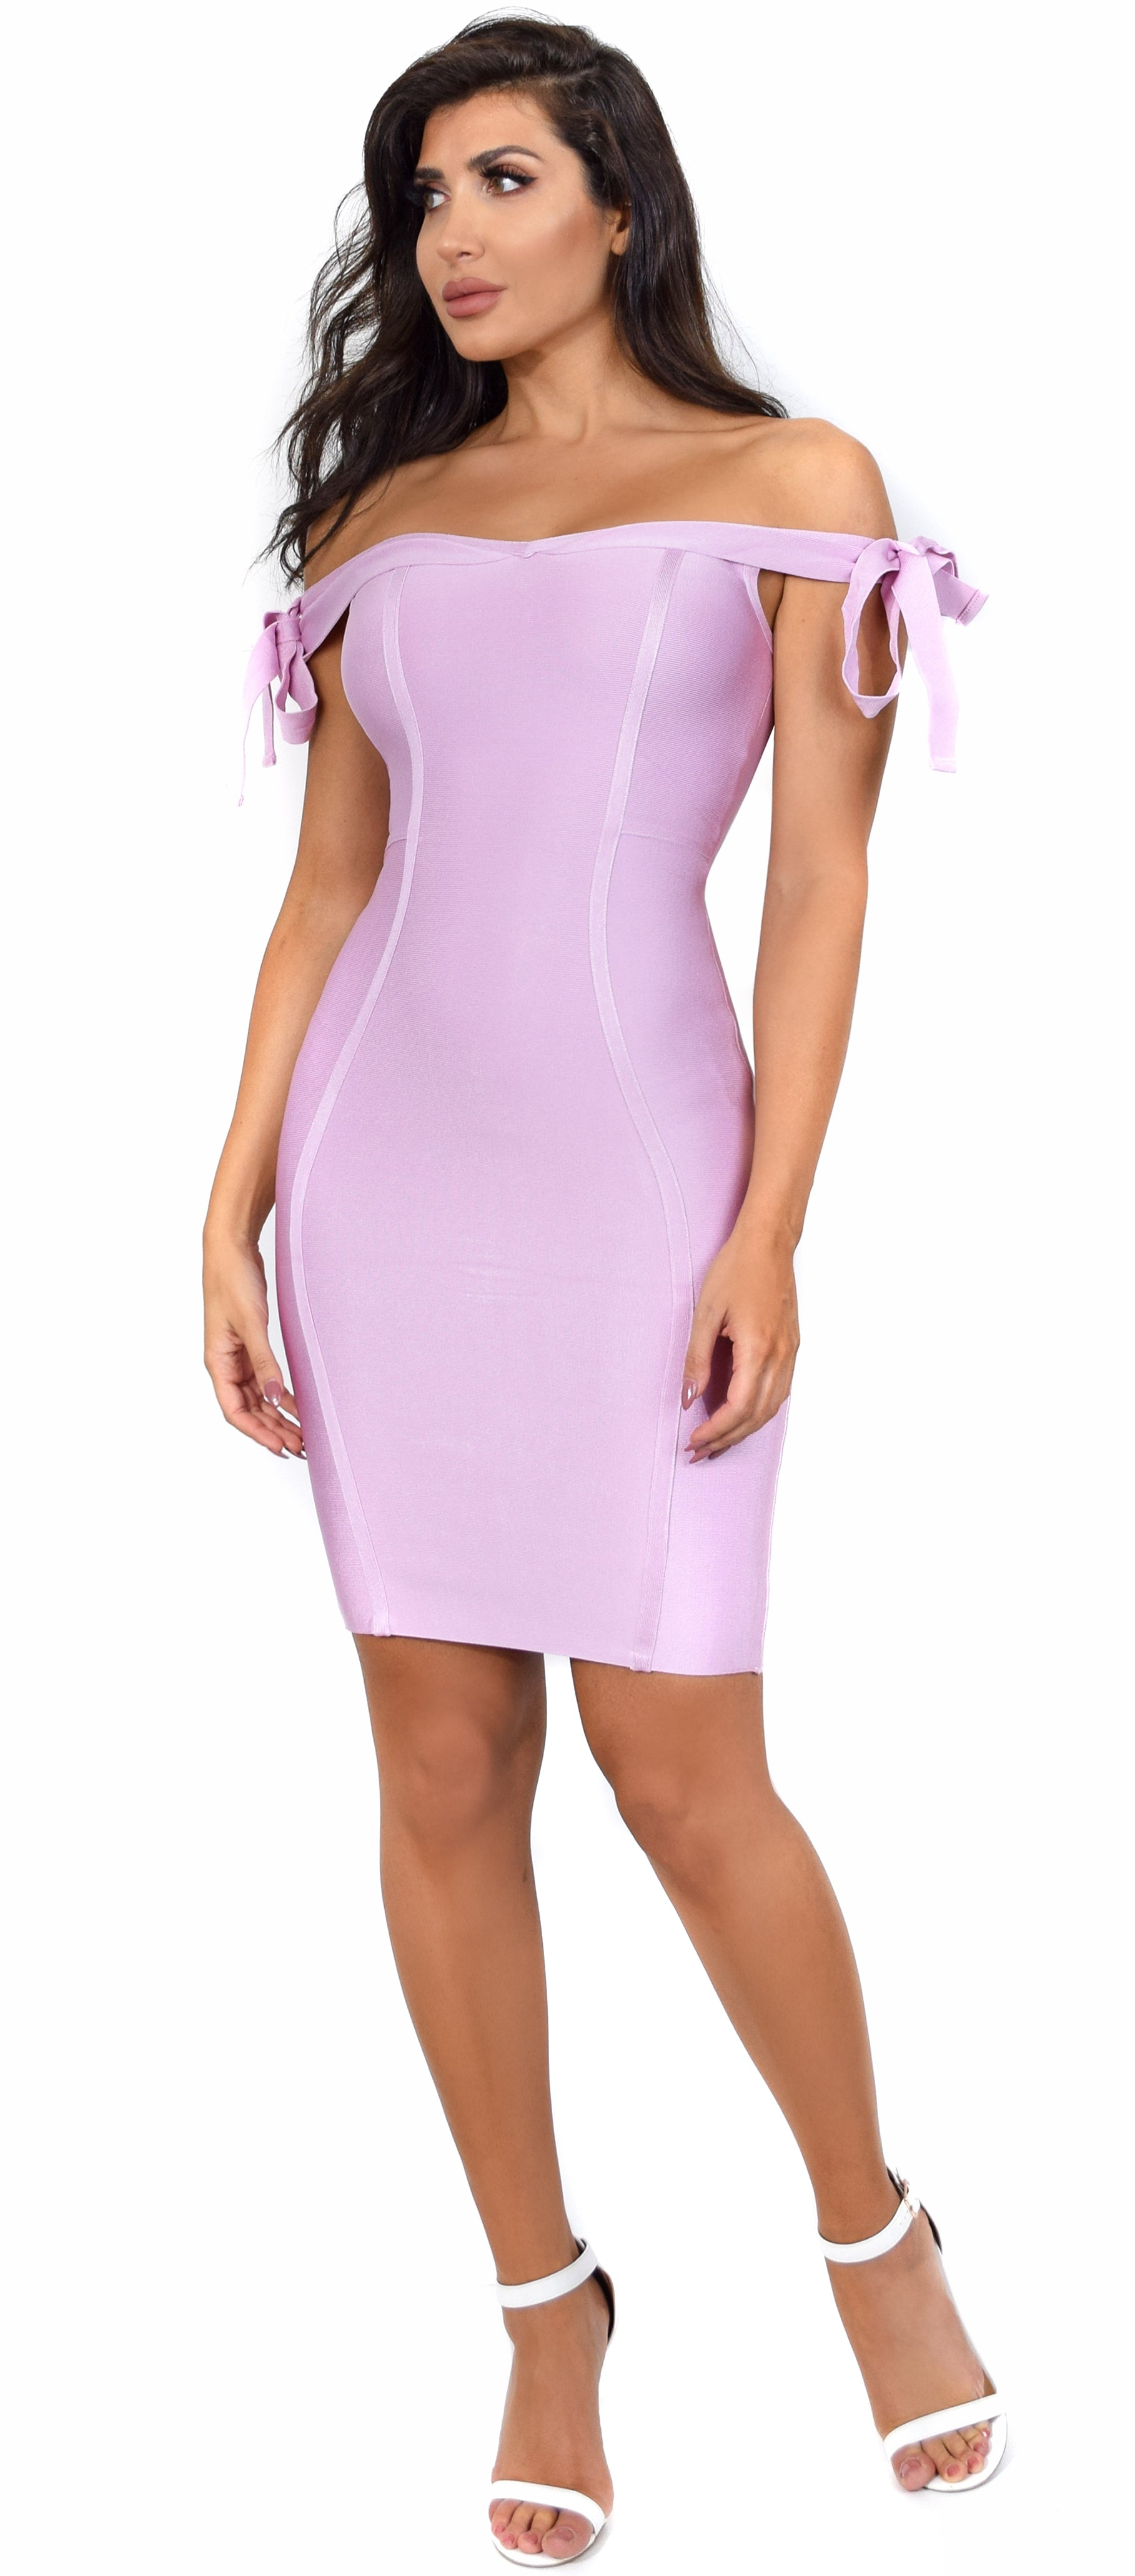 Estelle Pink Off Shoulder Arm Ties Bandage Dress - Emprada